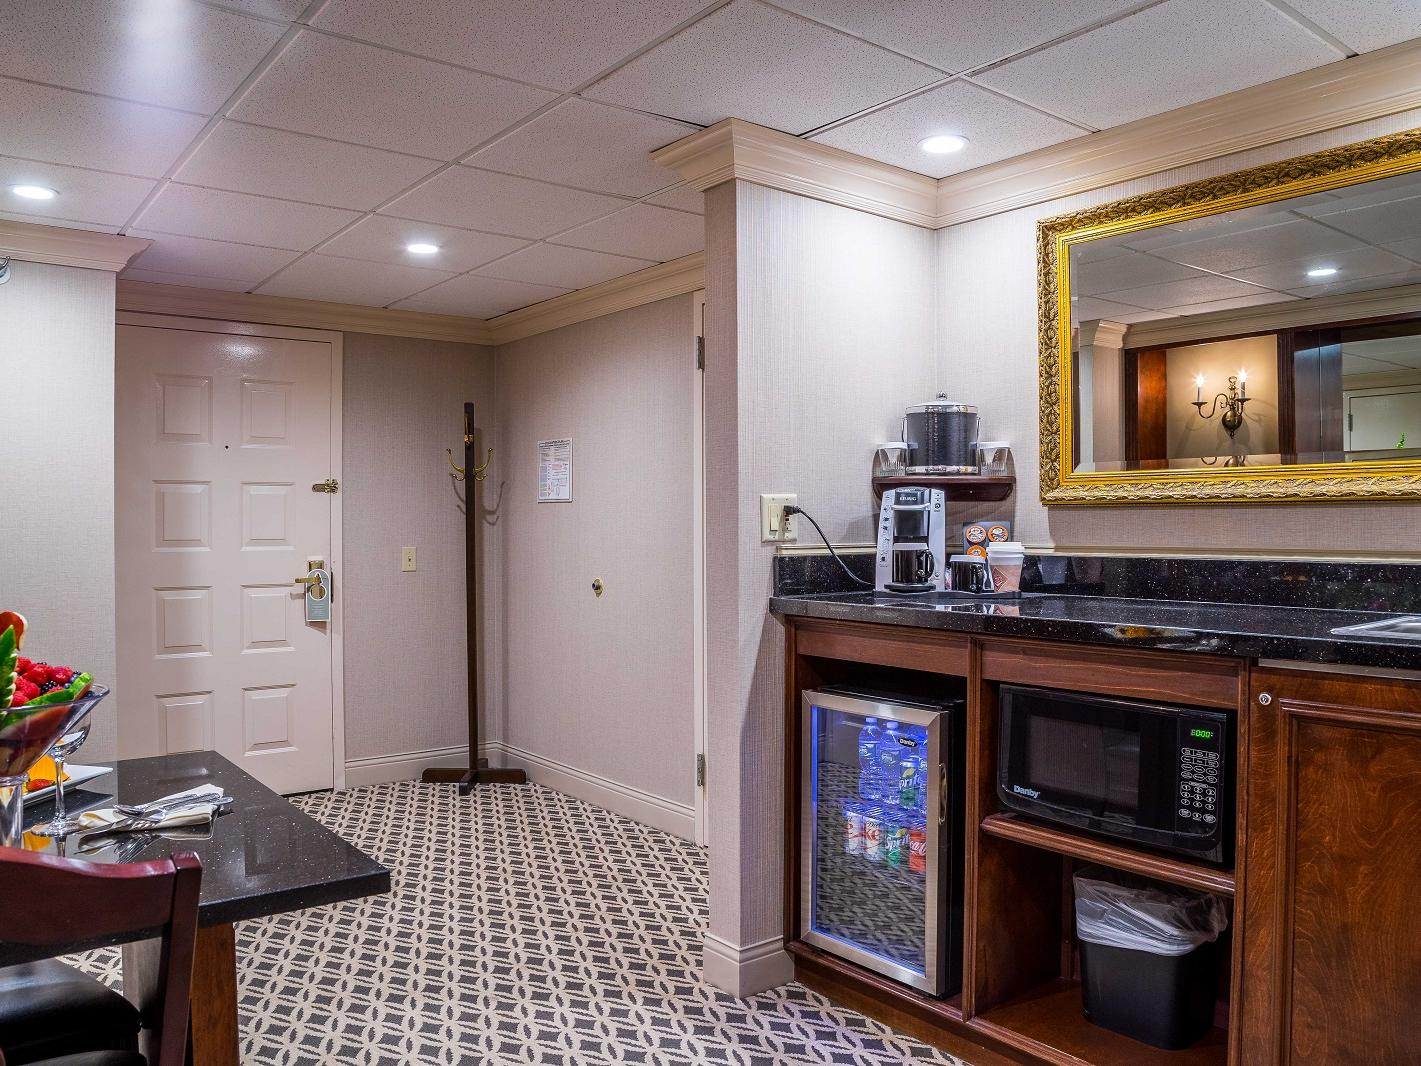 Kitchenette and dining area of presidential hotel suite